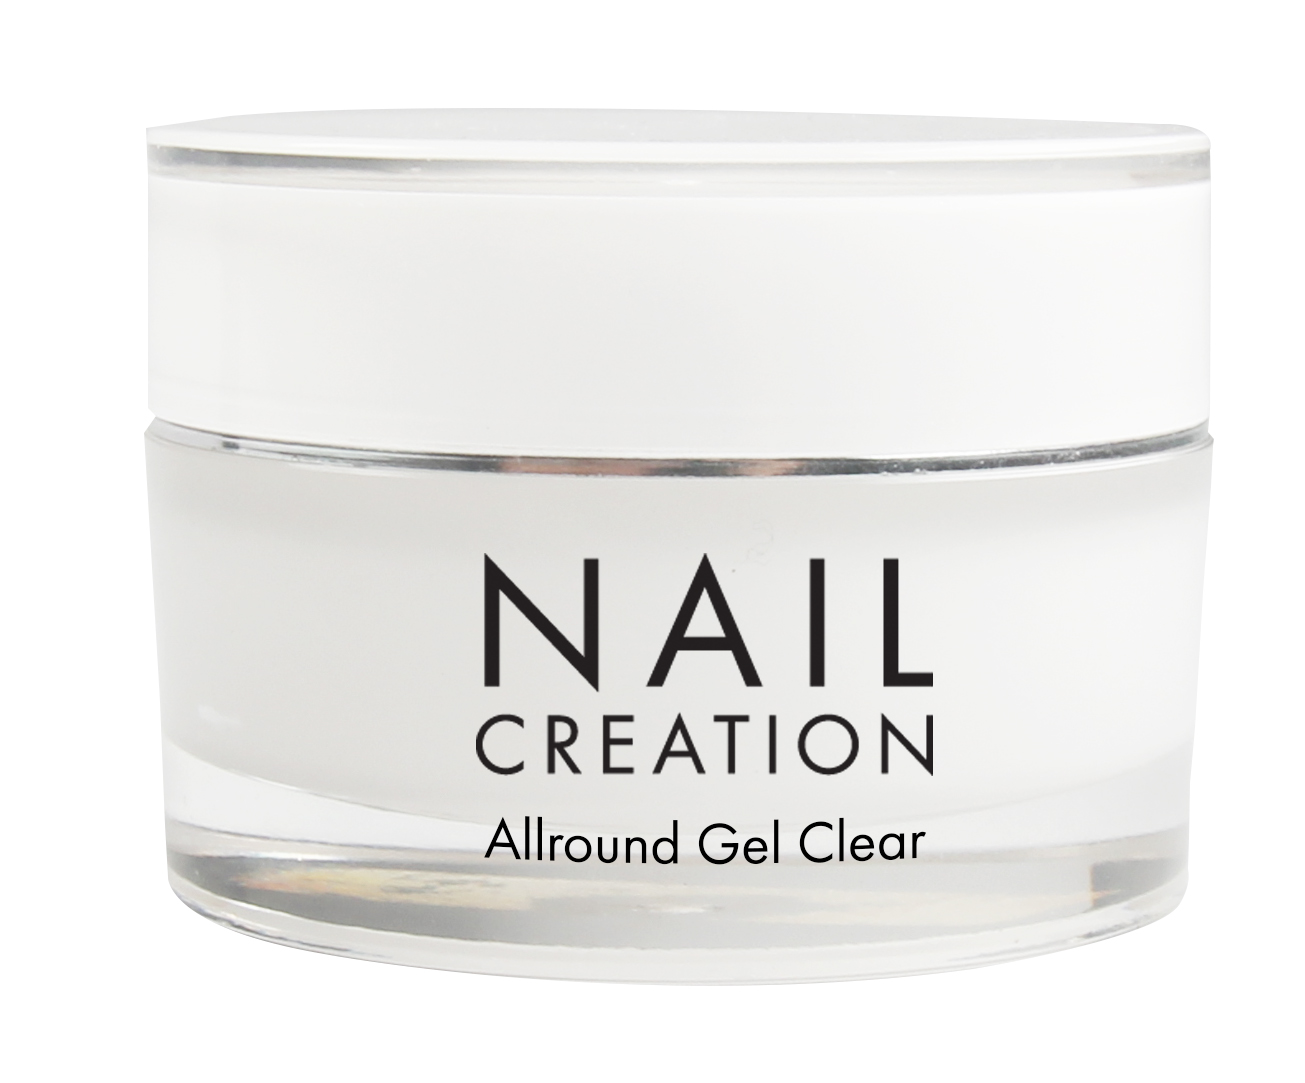 Afbeelding van Nail Creation Allround Gel - Clear 30 ml